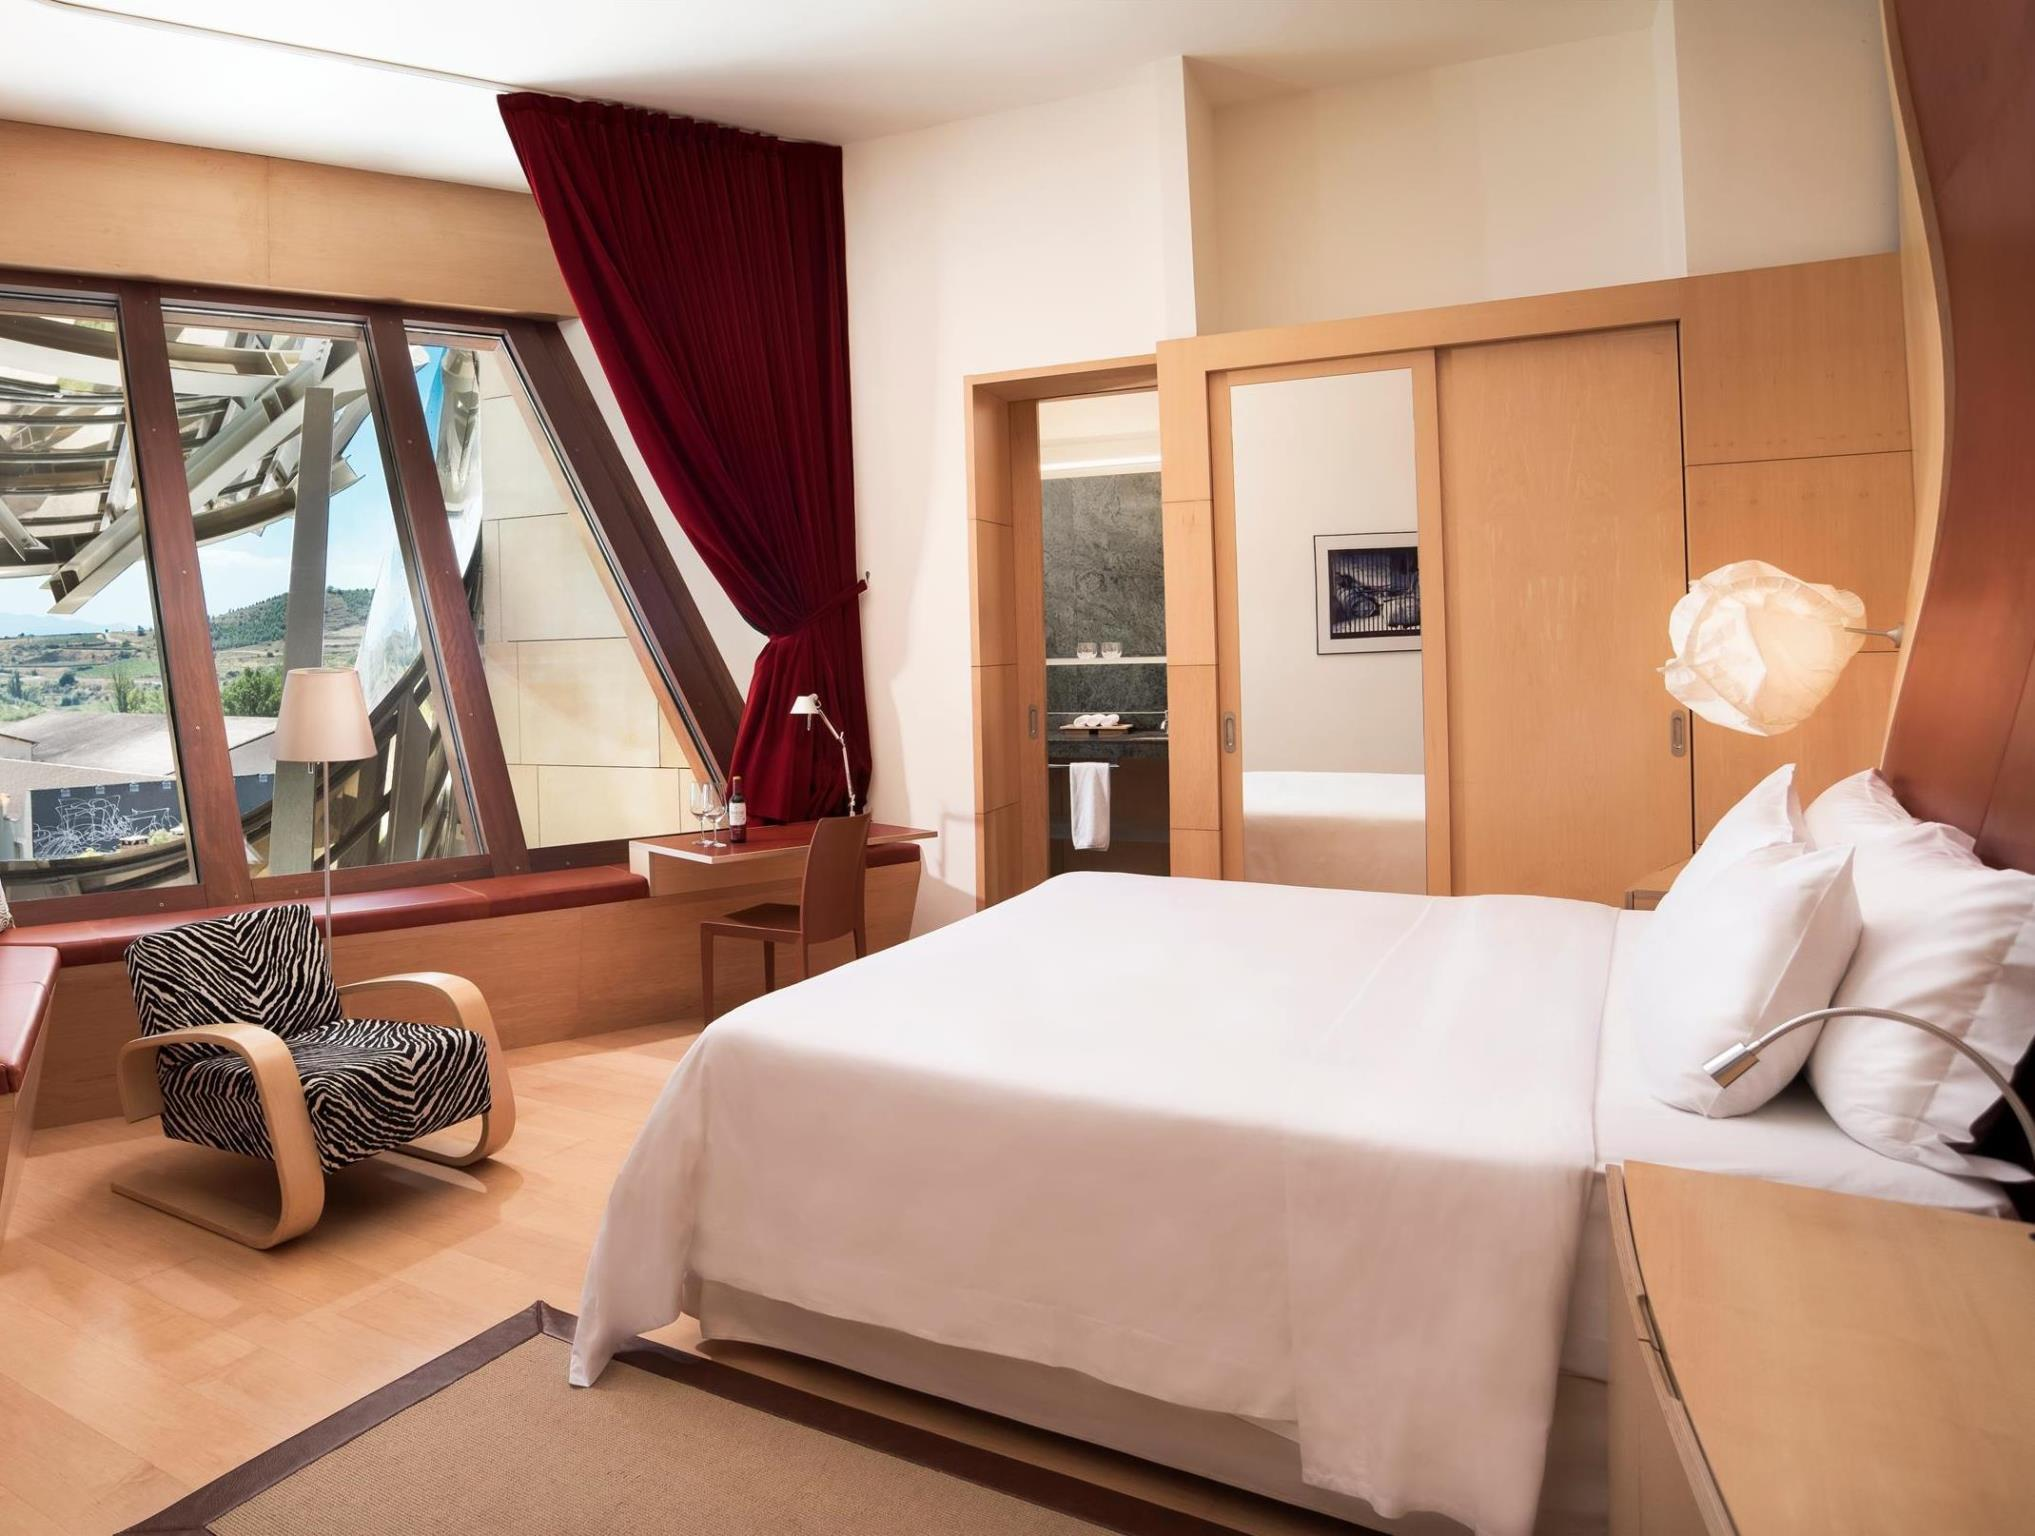 Deluxe King or Twin Room - Gehry Building